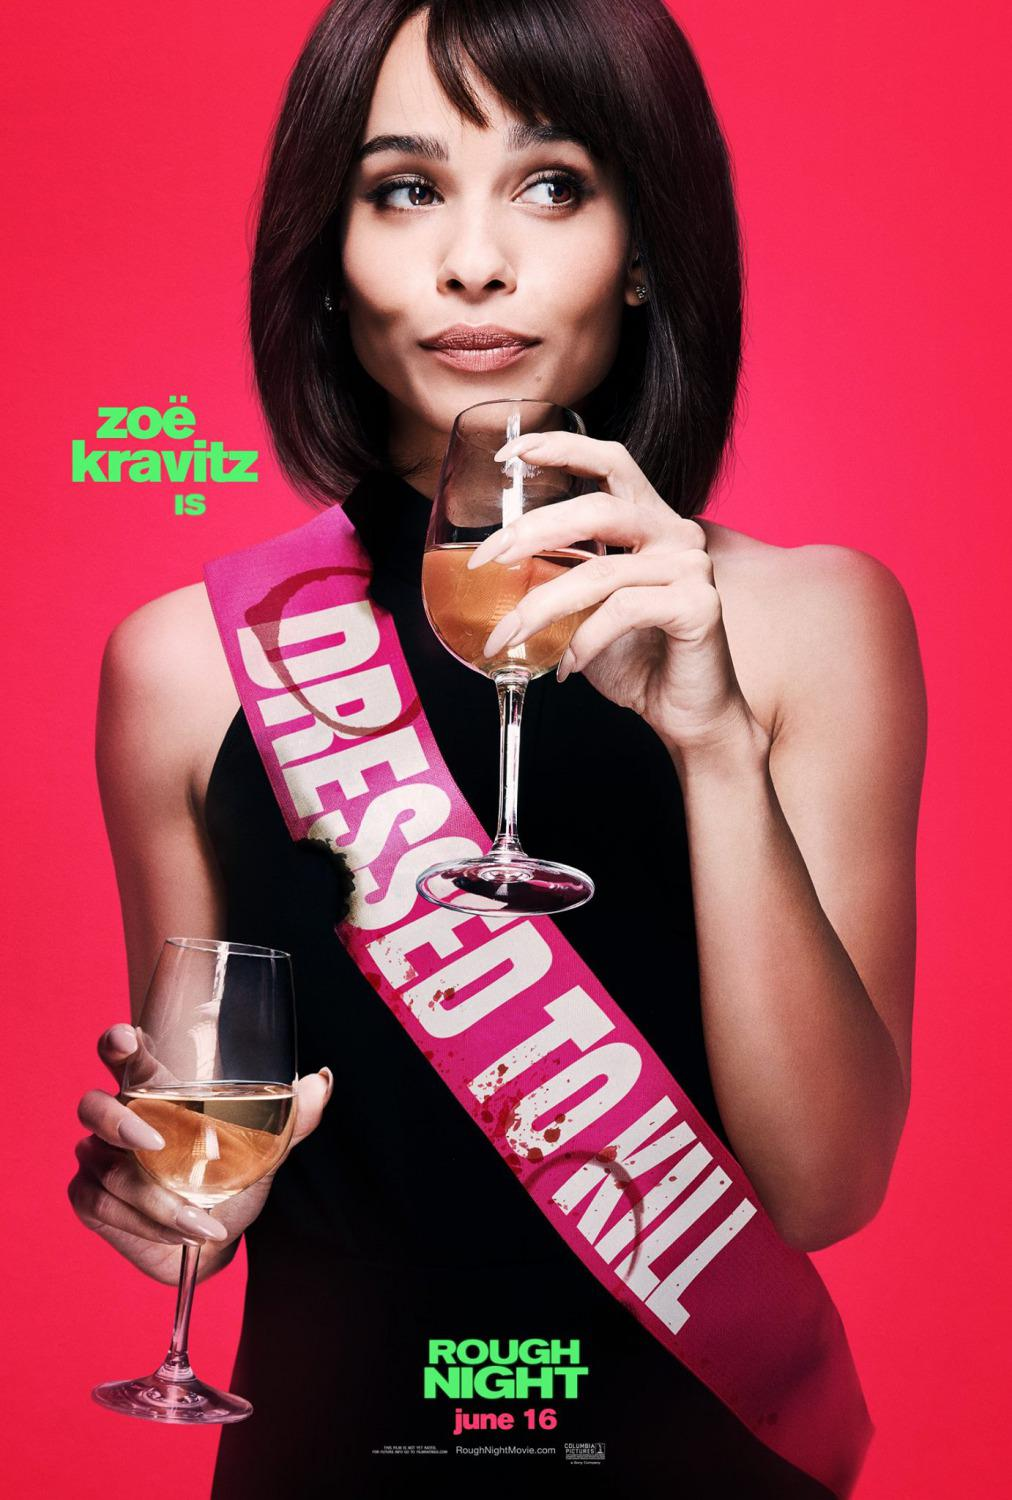 Crazy Night - Festa col morto - Rough Night - Girls Night Out - Pire Soirée - Noche fuera Control - Zoe Kravitz